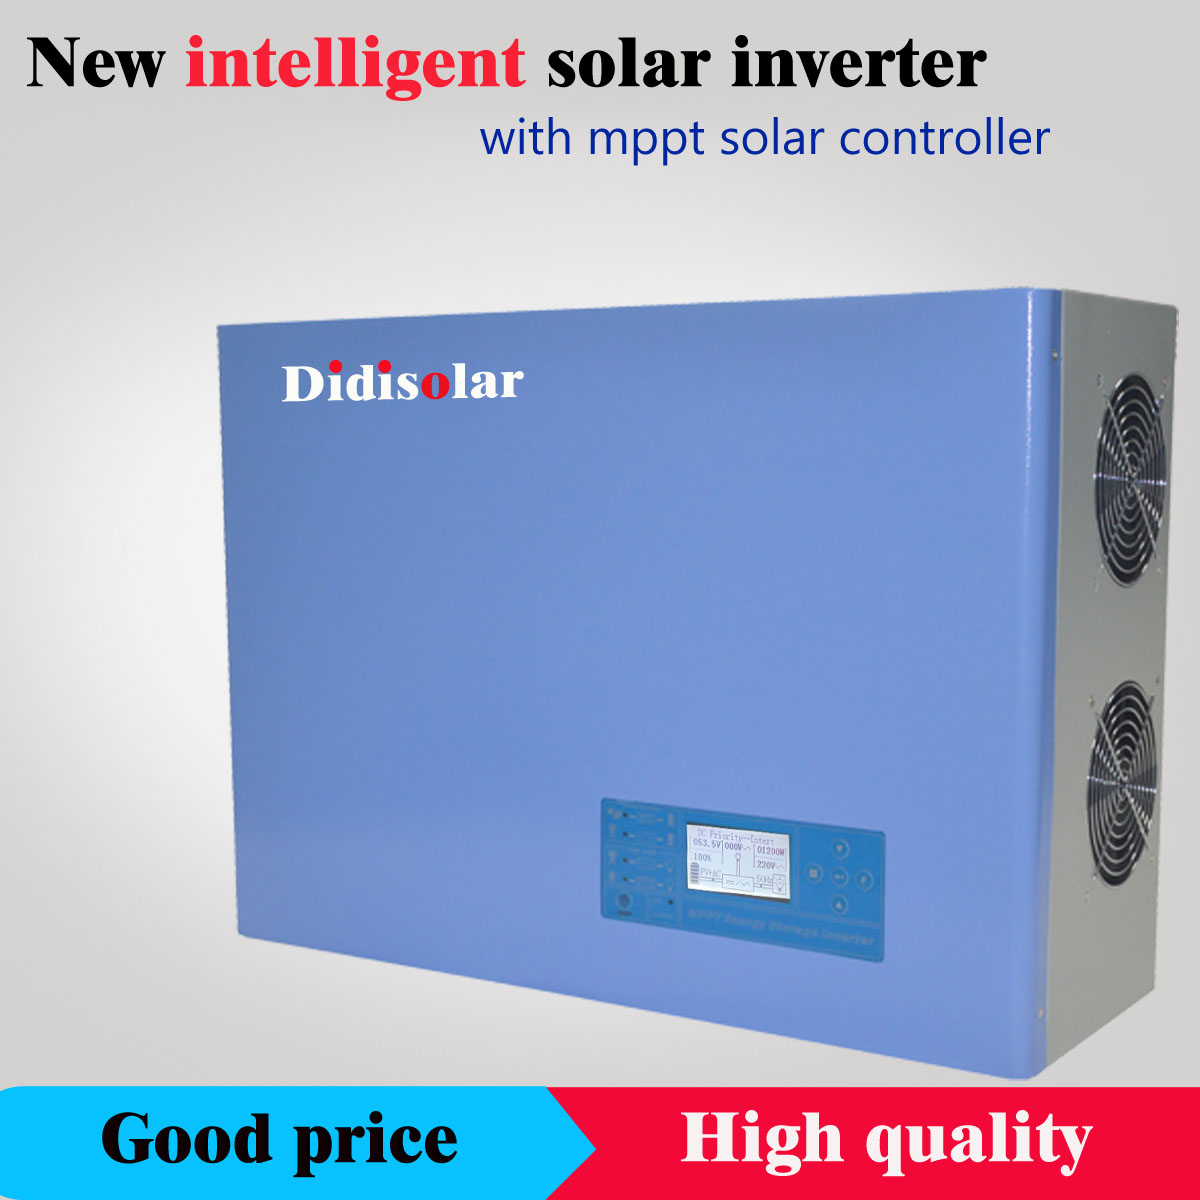 How to view the fault record of solar inverter